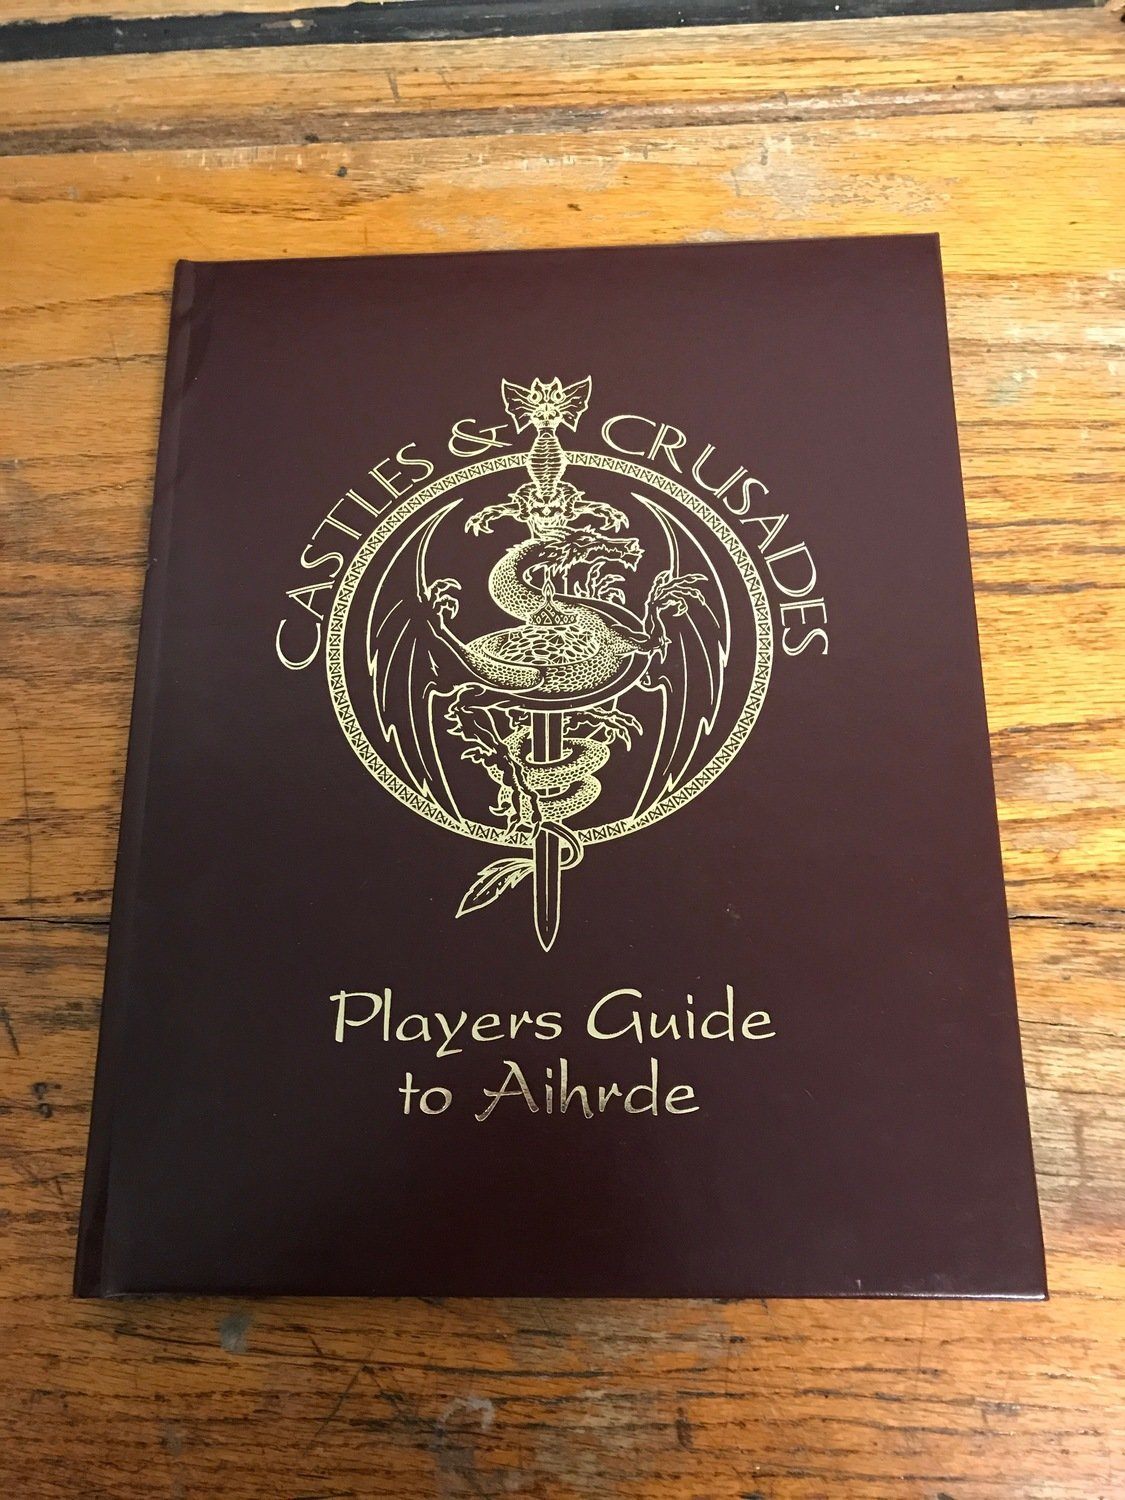 Castles & Crusades Players Guide to Aihrde -- Leather Edition